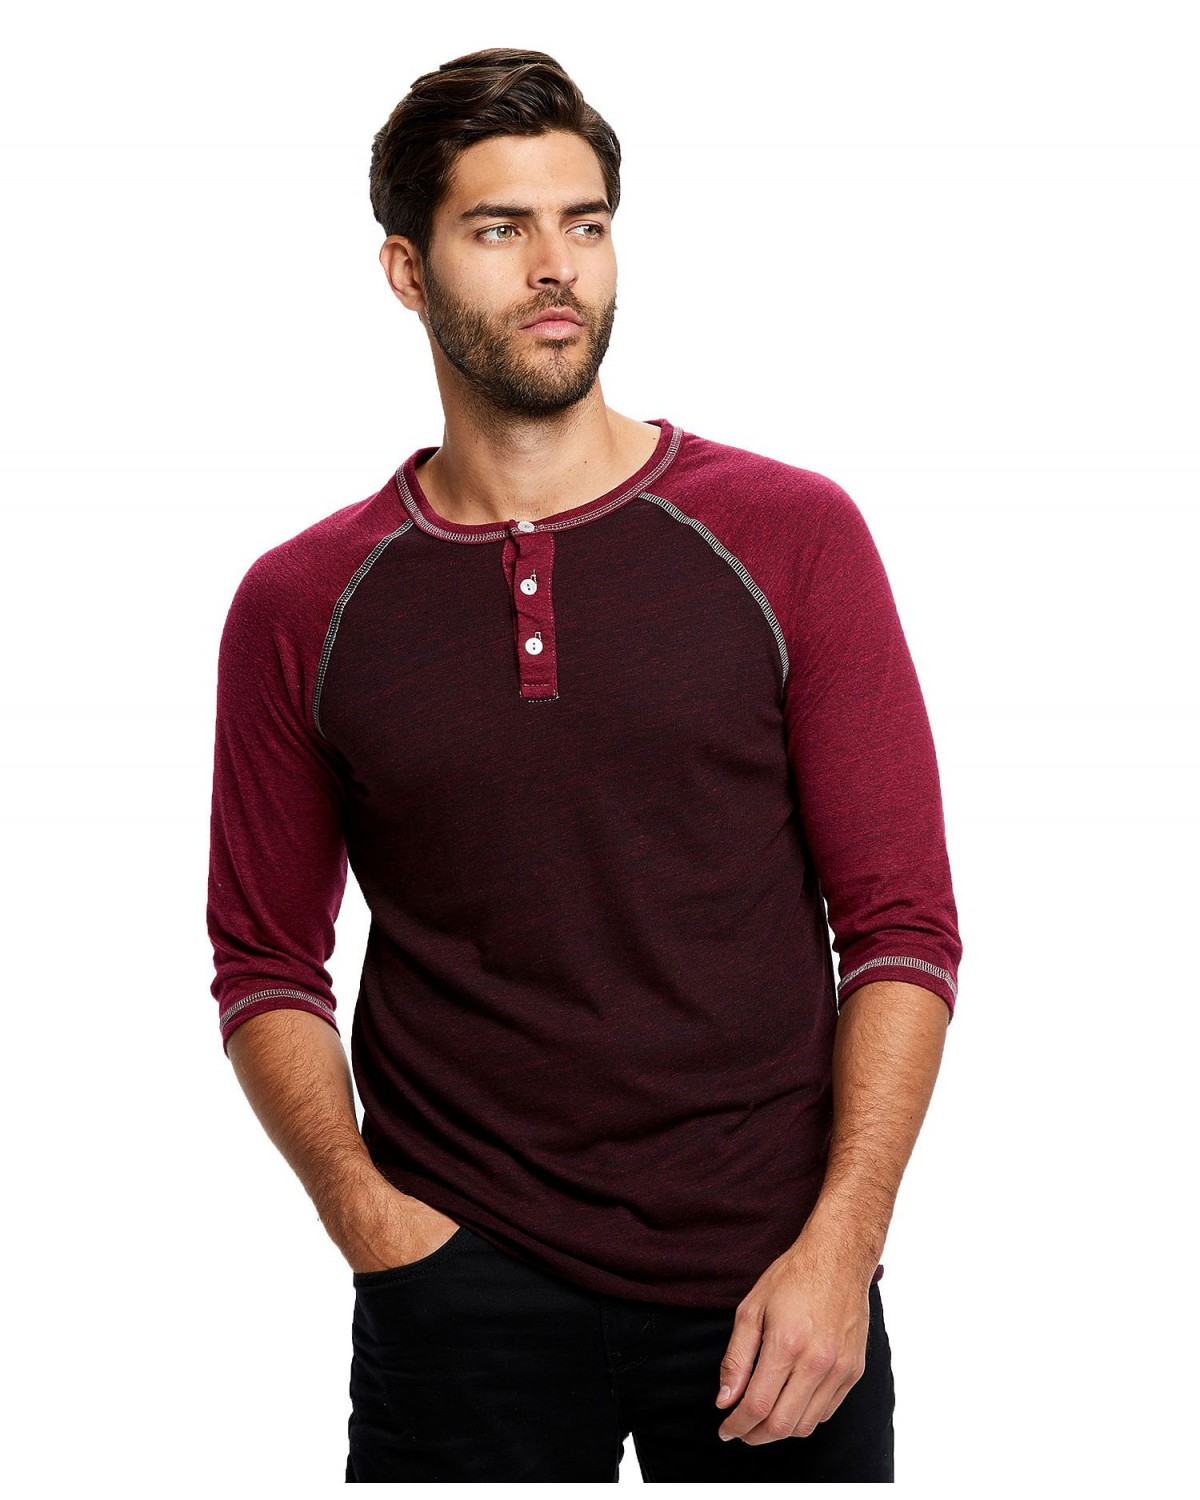 AAHVT427W American Apparel